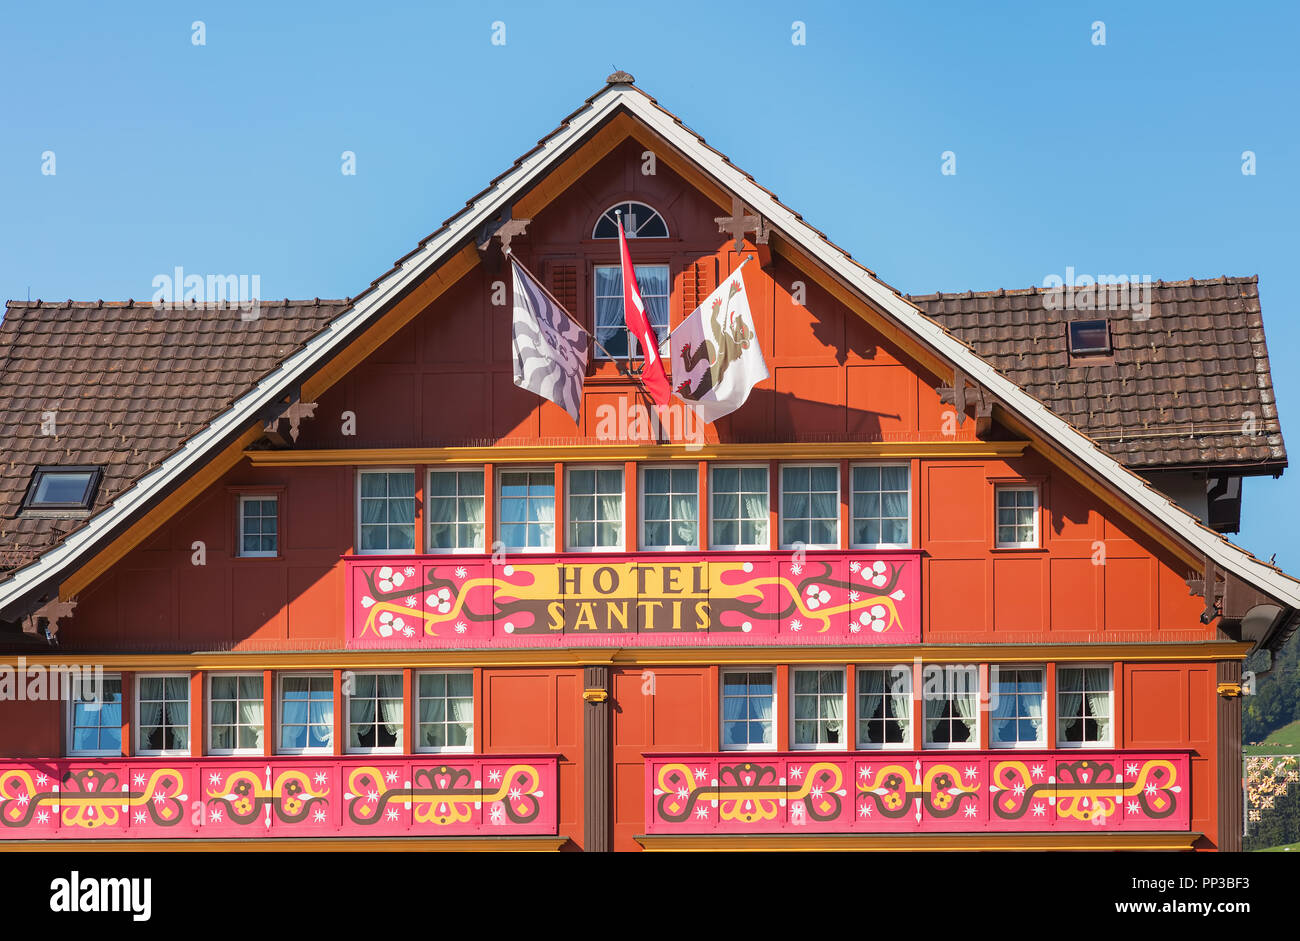 Appenzell, Switzerland - September 20, 2018: upper part of the building of the Romantik-Hotel Santis in the town of Appenzell, view from Landsgemeinde - Stock Image